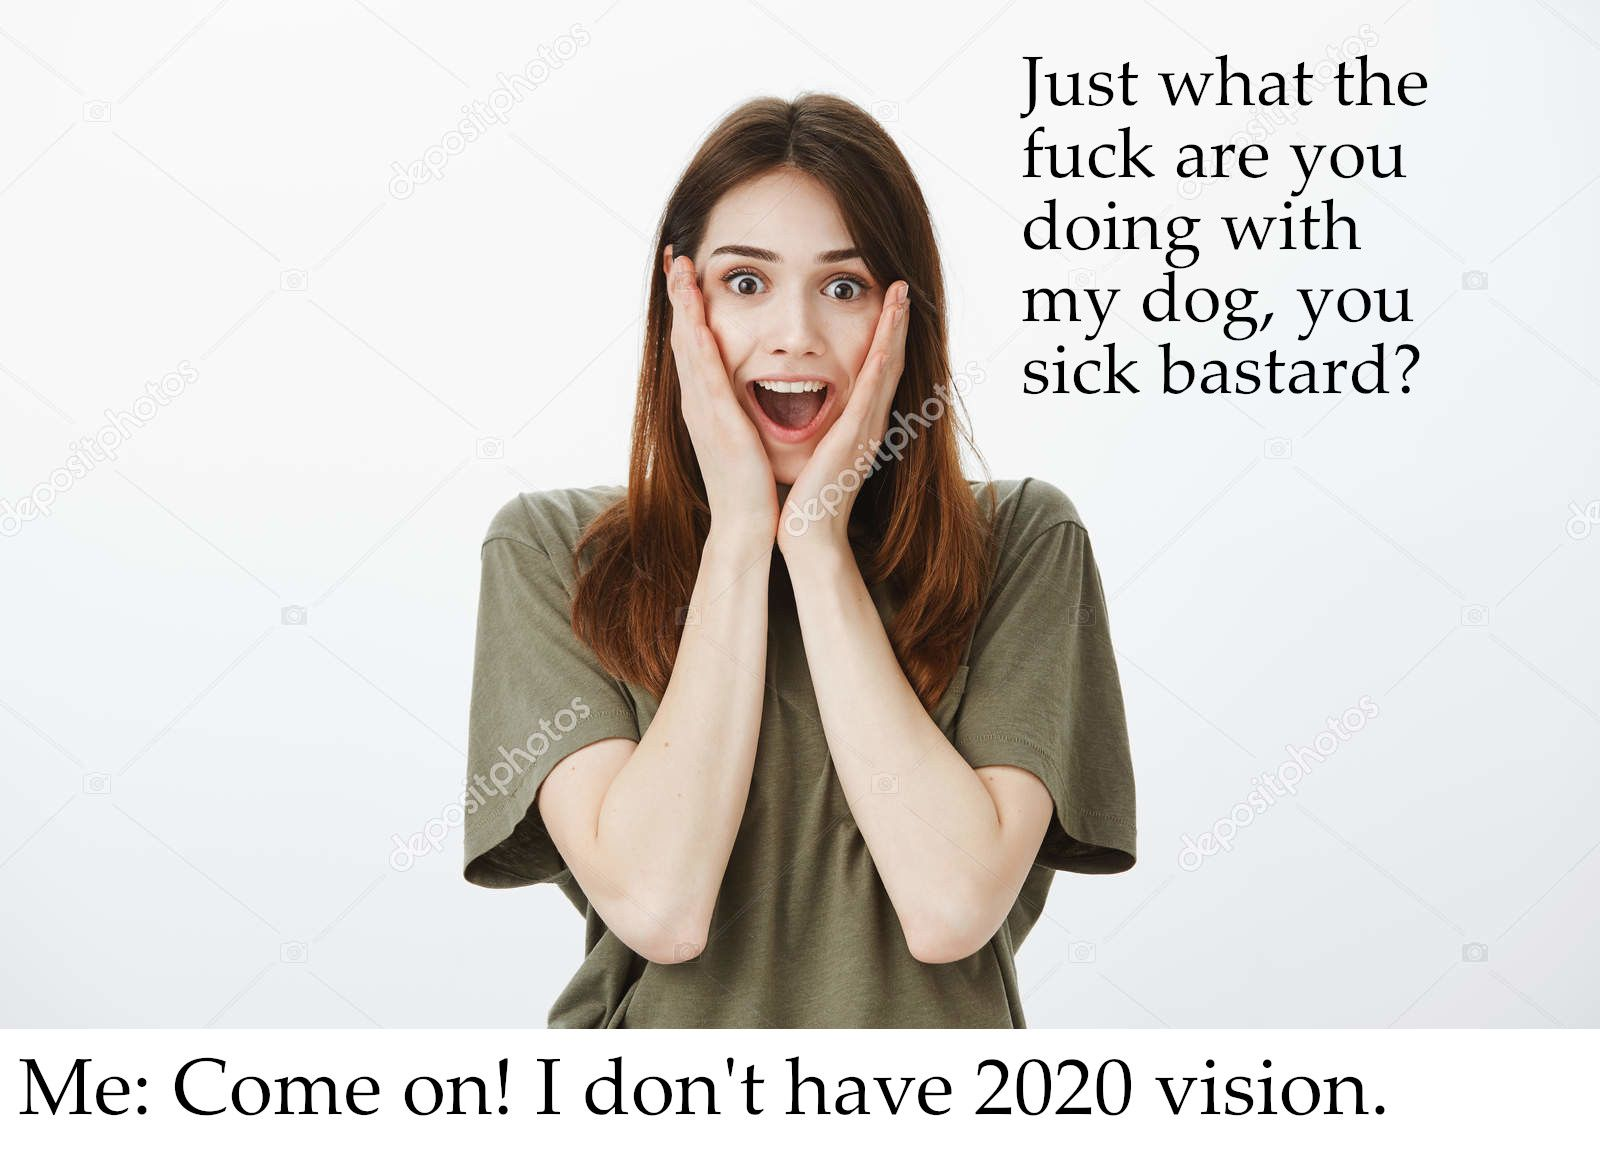 Good vision is really important this year